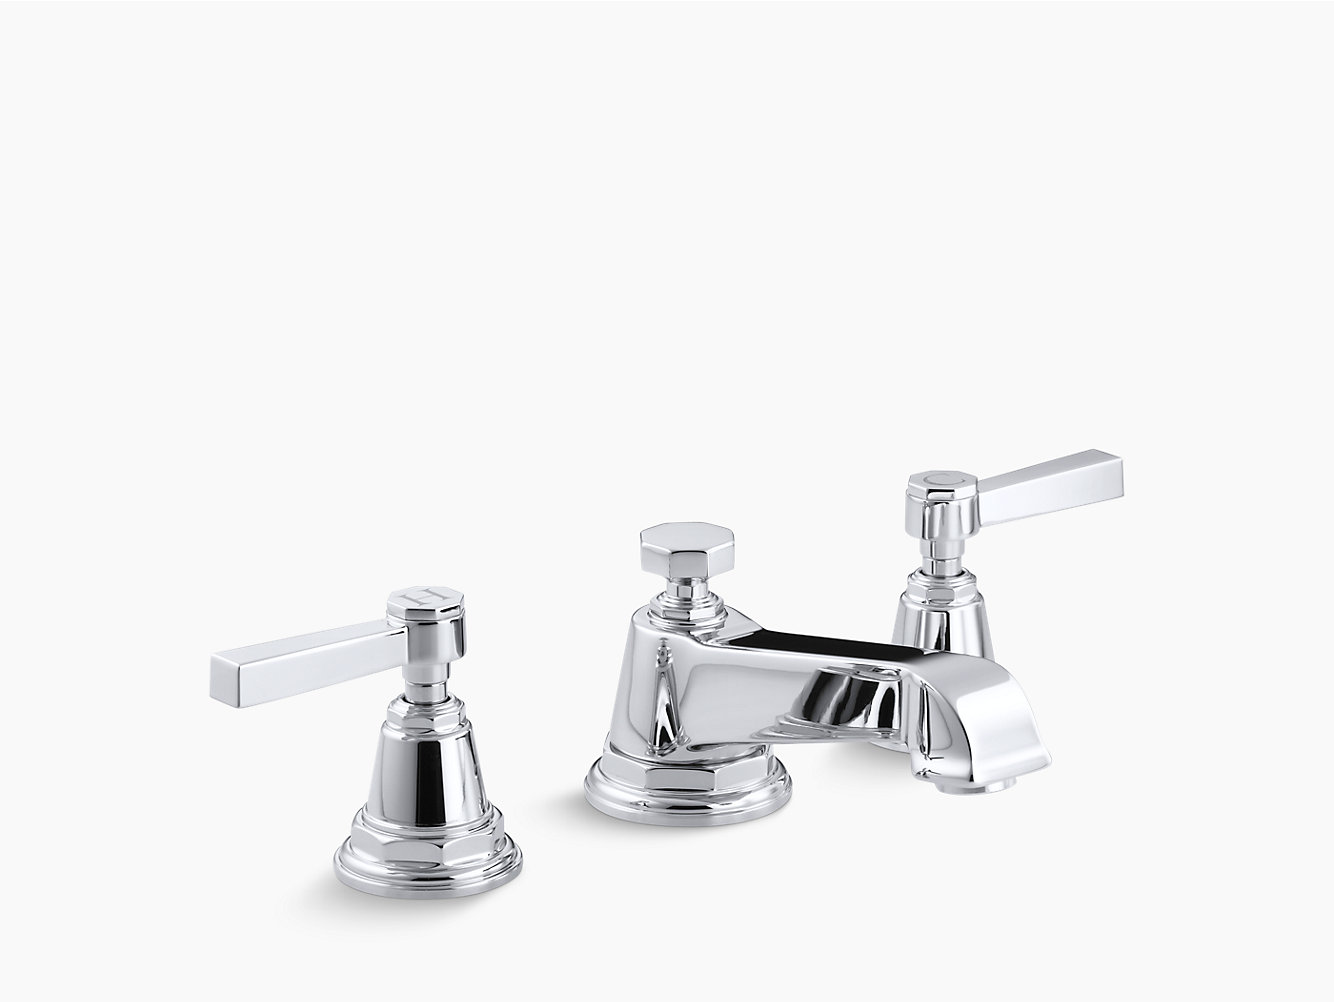 Pinstripe Widespread Sink Faucet with Pure Design | K-13132-4A | KOHLER